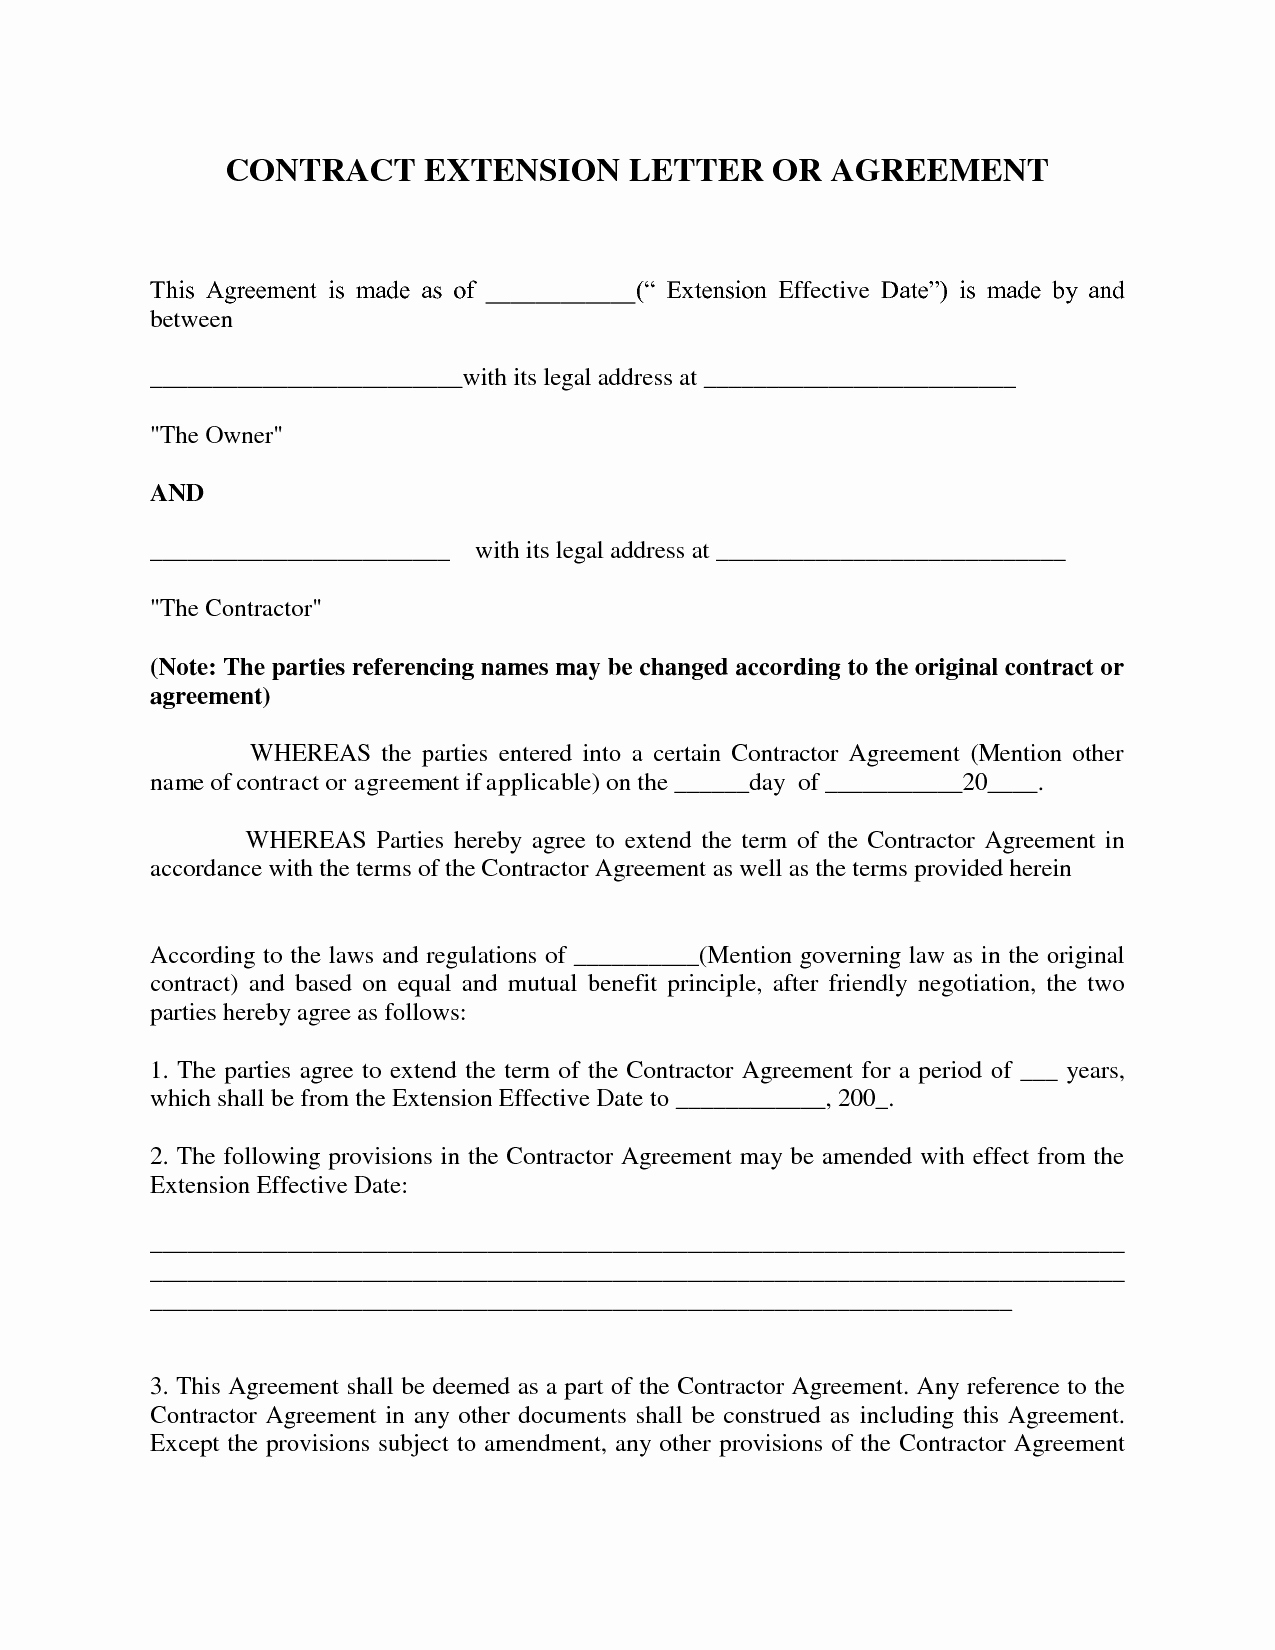 Child Maintenance Agreement Letter Template - Cover Letter for Contract Agreement Acurnamedia